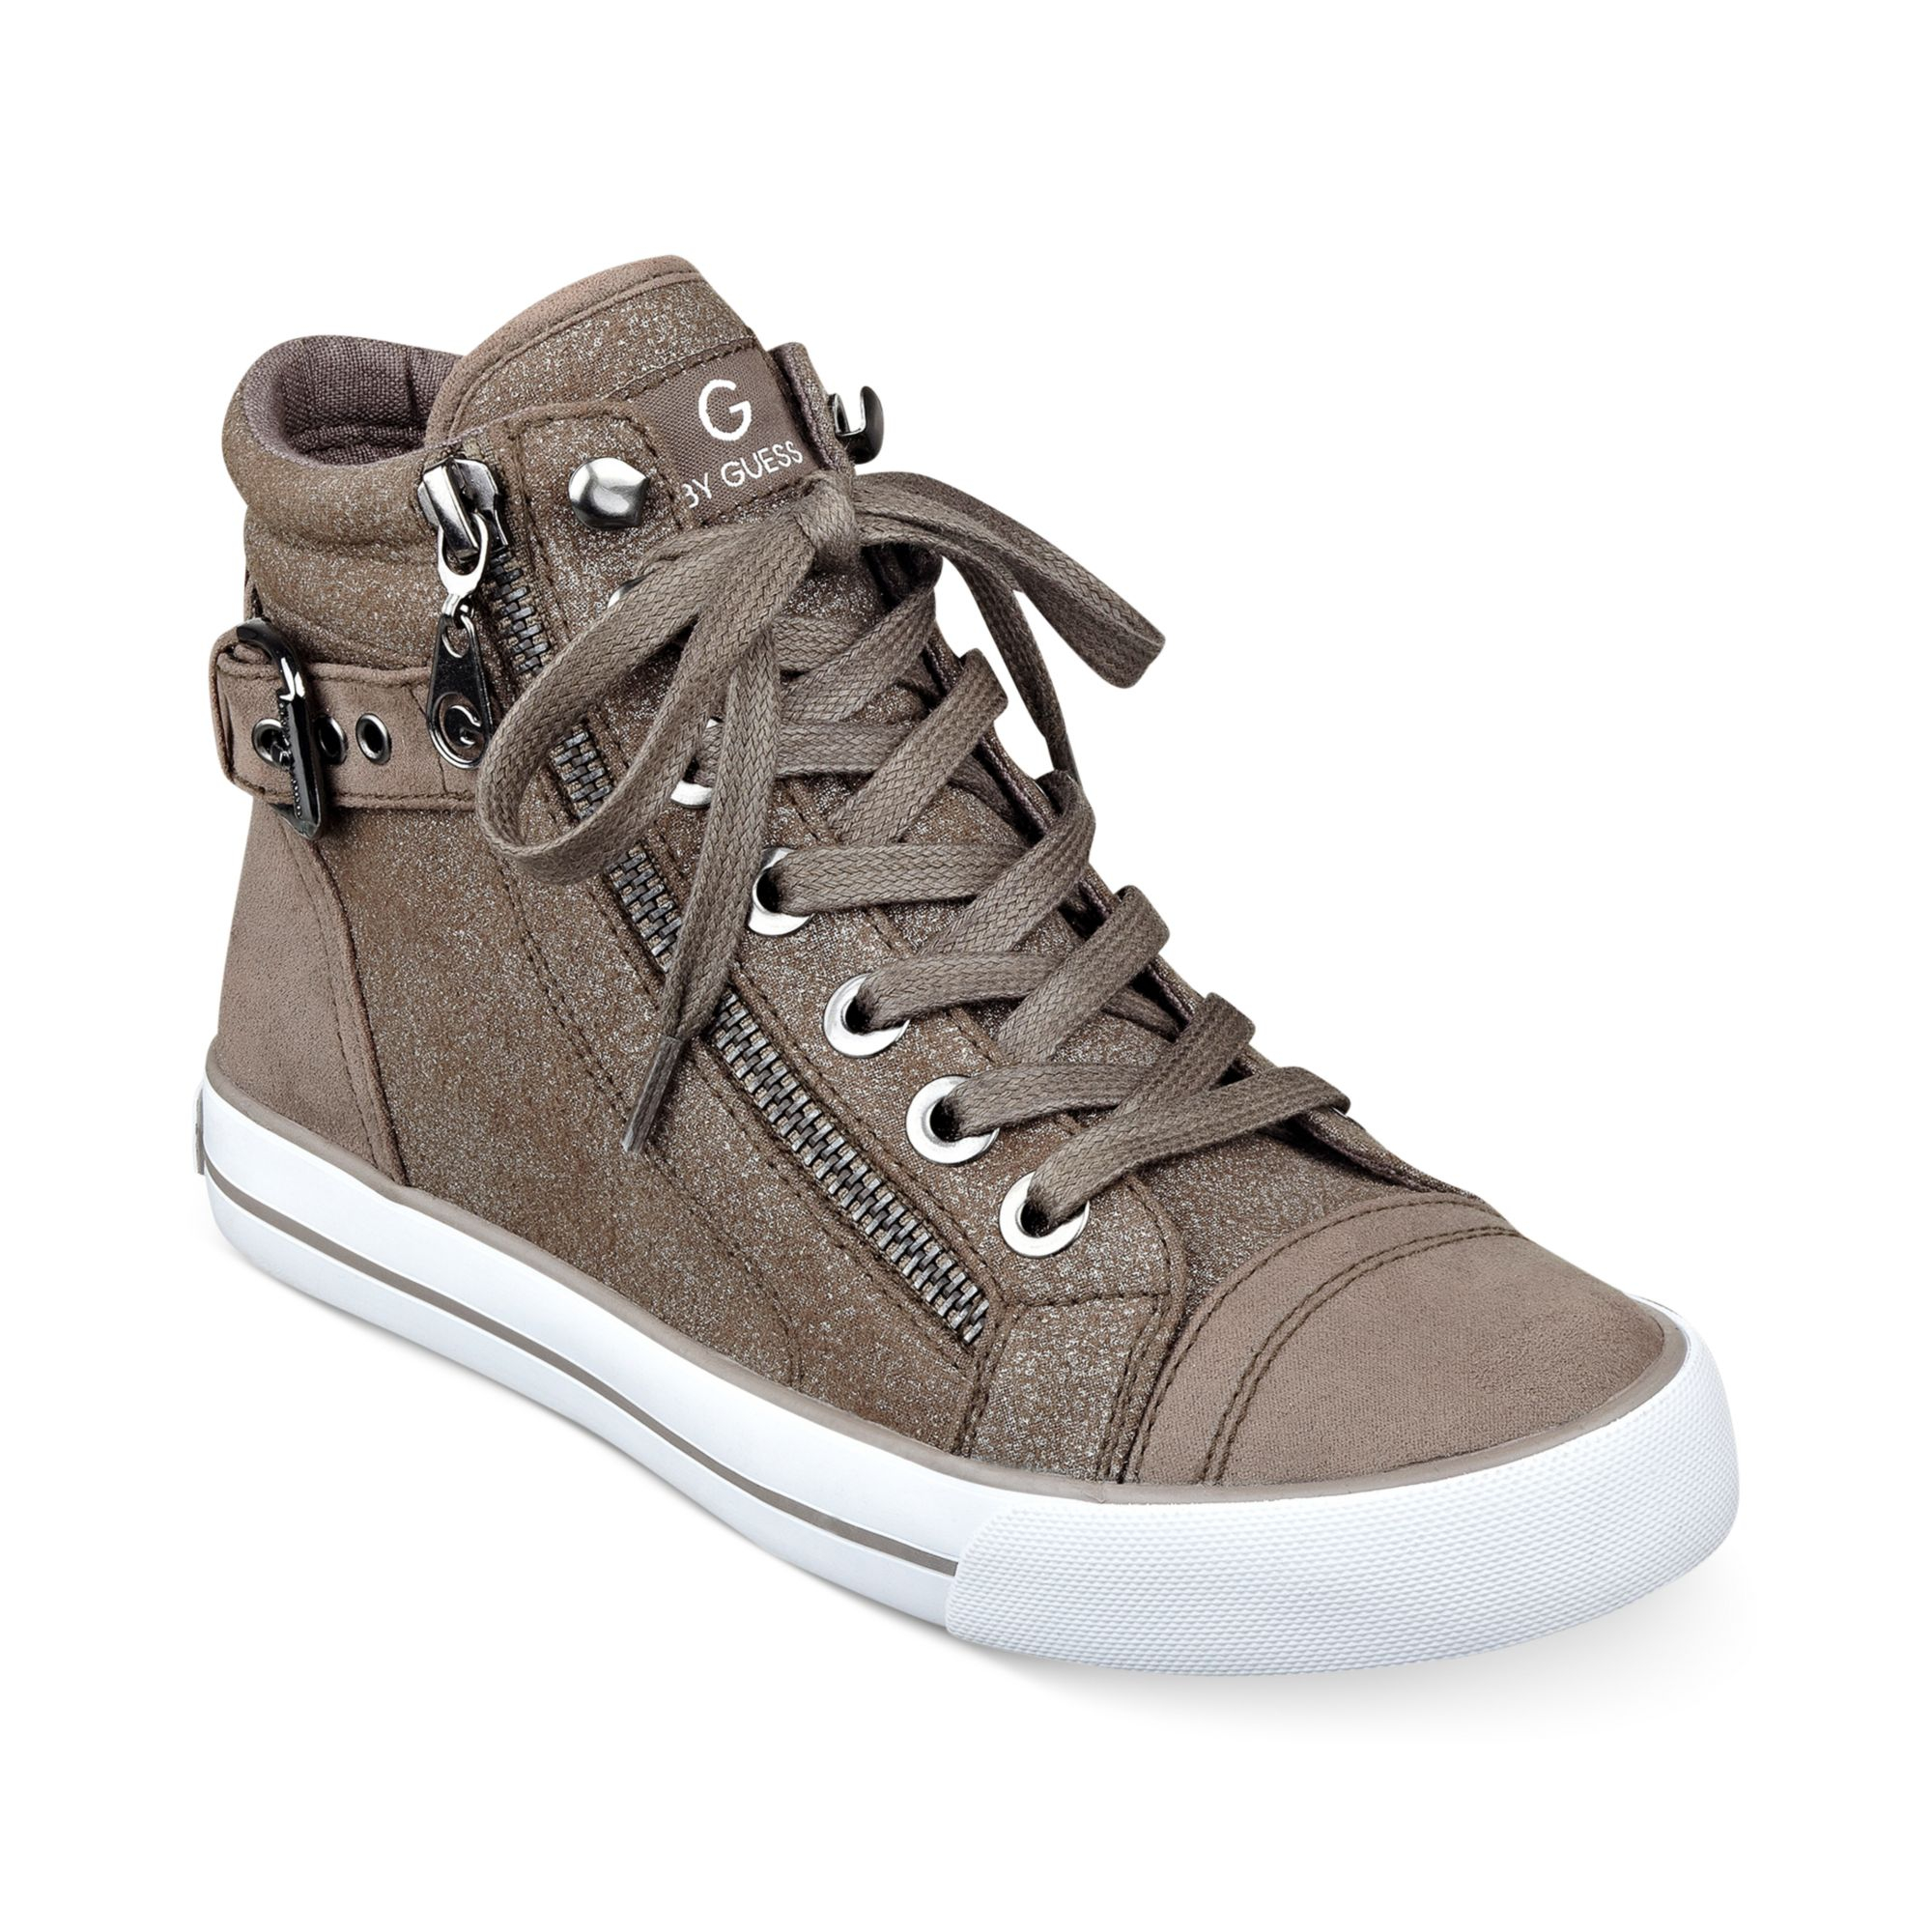 268d2ced1 Lyst - G by Guess Womens Olama High Top Sneakers in Gray